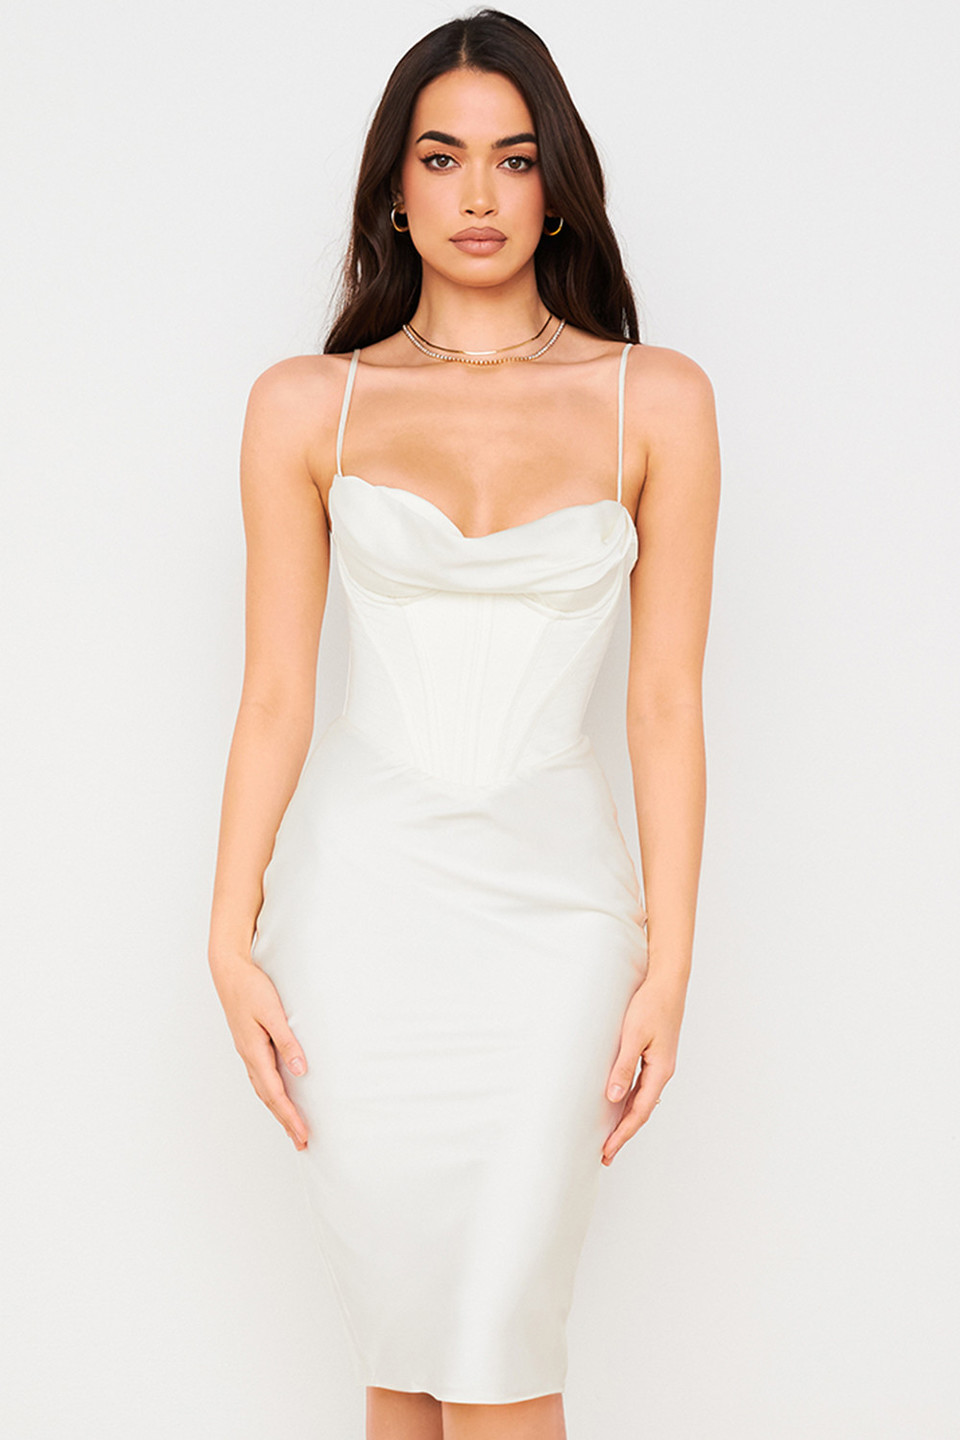 Myrna Ivory Corset Slip Dress